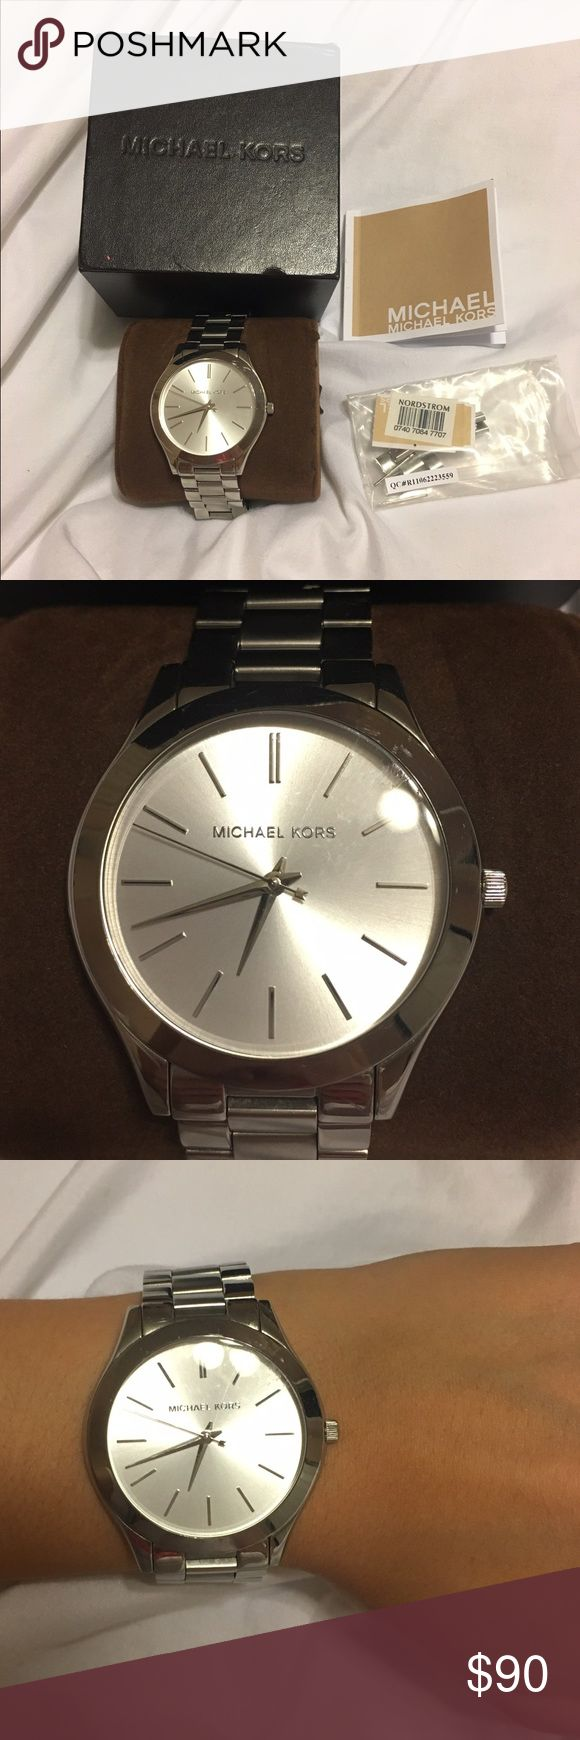 Michael Kors Sliver Watch Very good condition. Light scratches and needs new battery *comes with original box manual and extra links*   Retails for $195  https://www.michaelkors.com/product/runway-silver-tone-watch/_/R-US_MK3178?colorExplode=true&skuId=146489111&ecid=MKC_Google_US&gclid=CLCb6MXMudQCFYKLswodqWEFAQ Michael Kors Accessories Watches